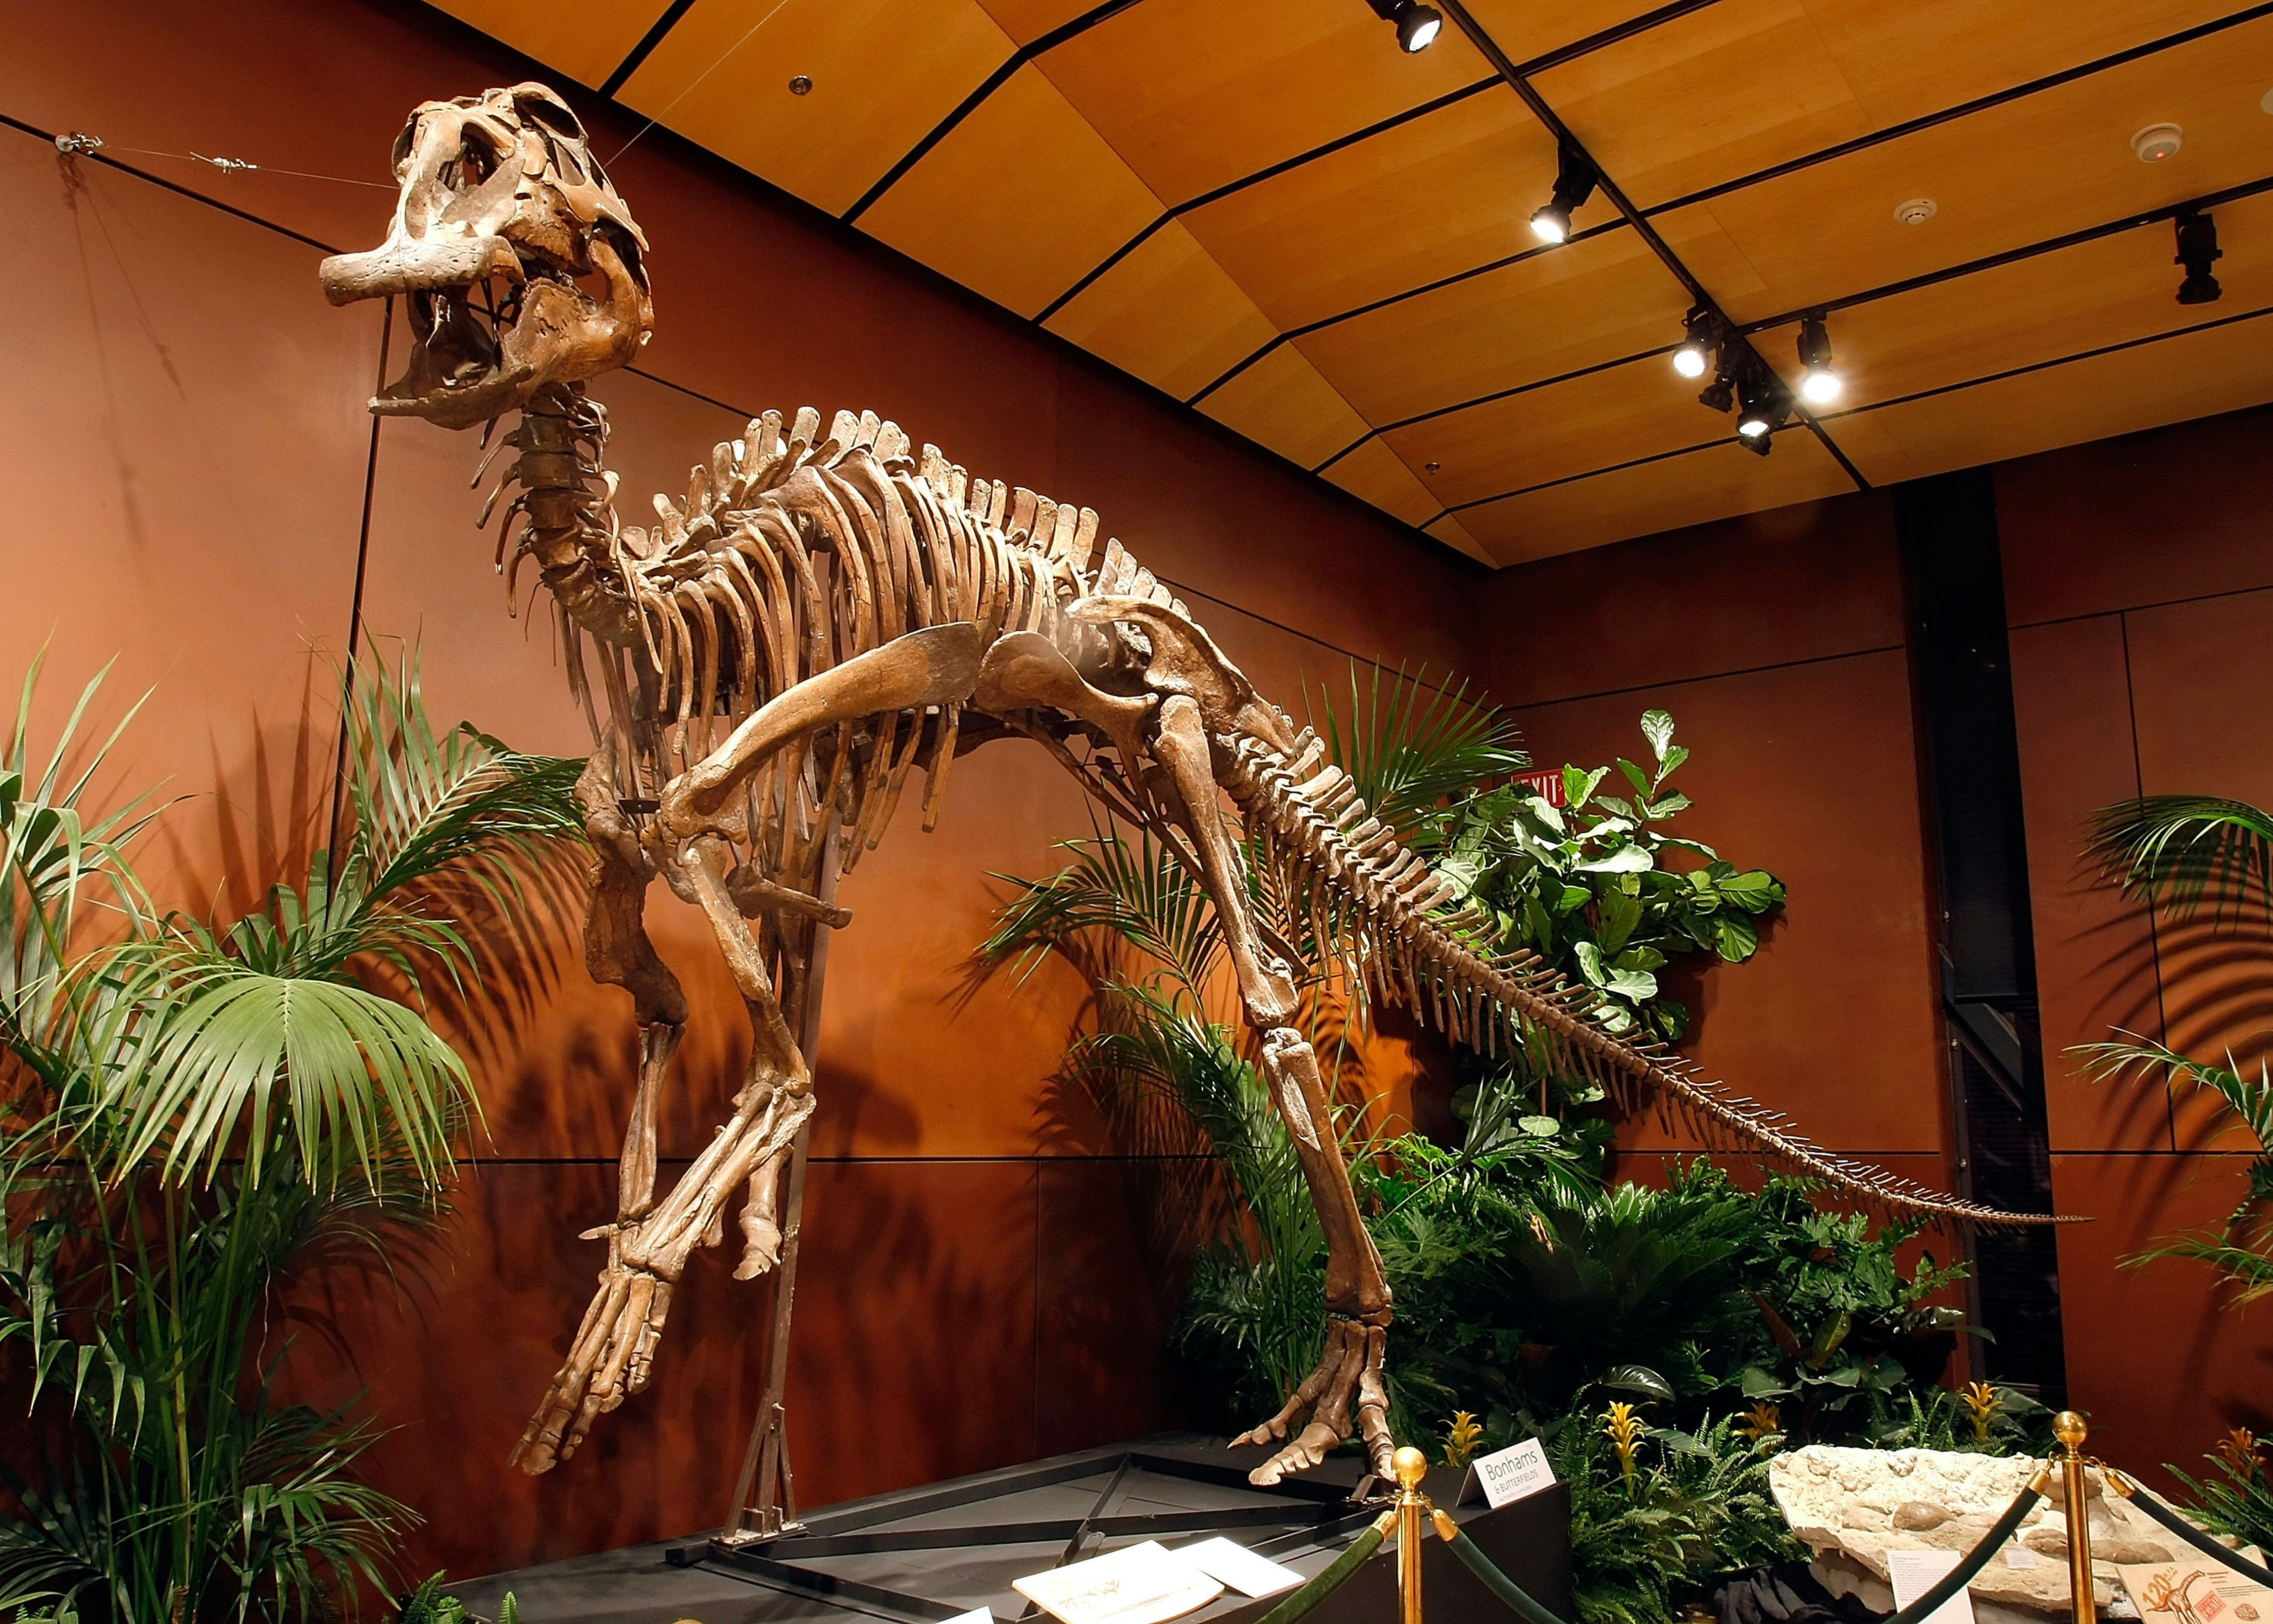 This particular hadrosaur is actually on display in Las Vegas.